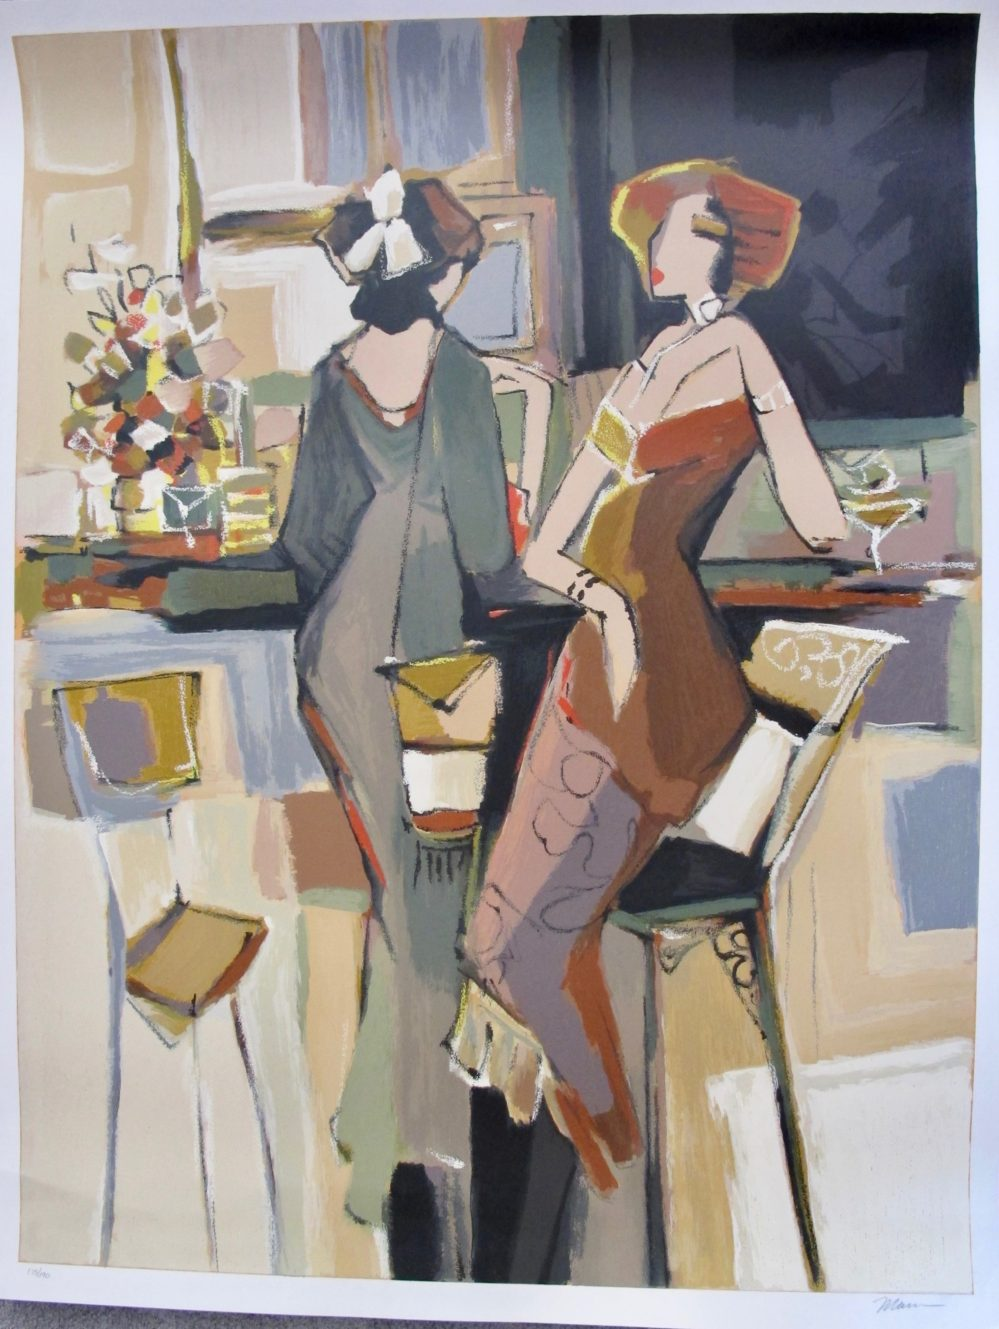 ISAAC MAIMON SALUTE Hand Signed Limited Edition Large Serigraph